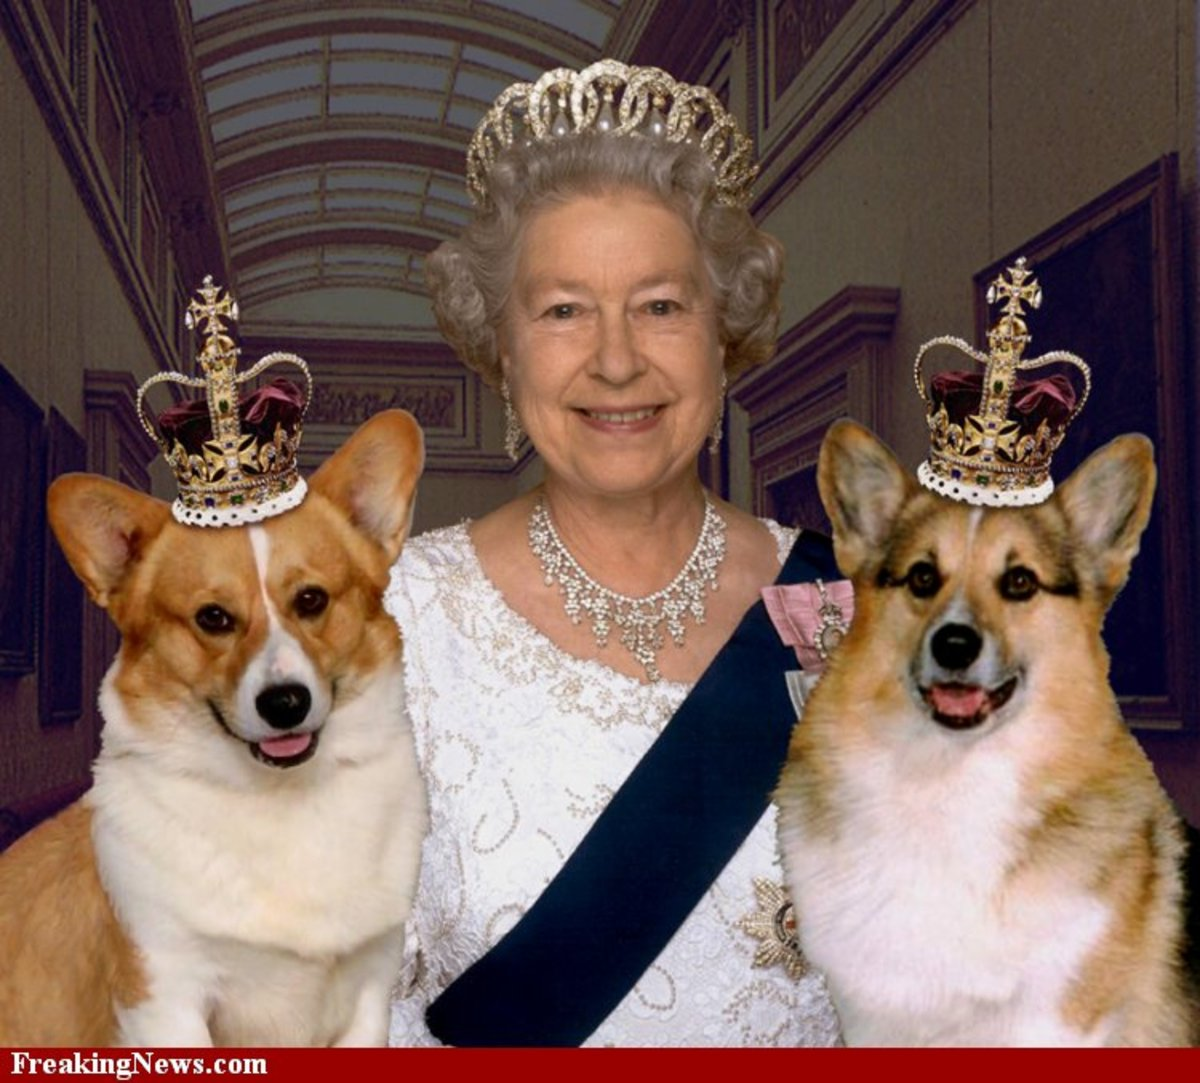 Her Majesty And The Royal Corgies.